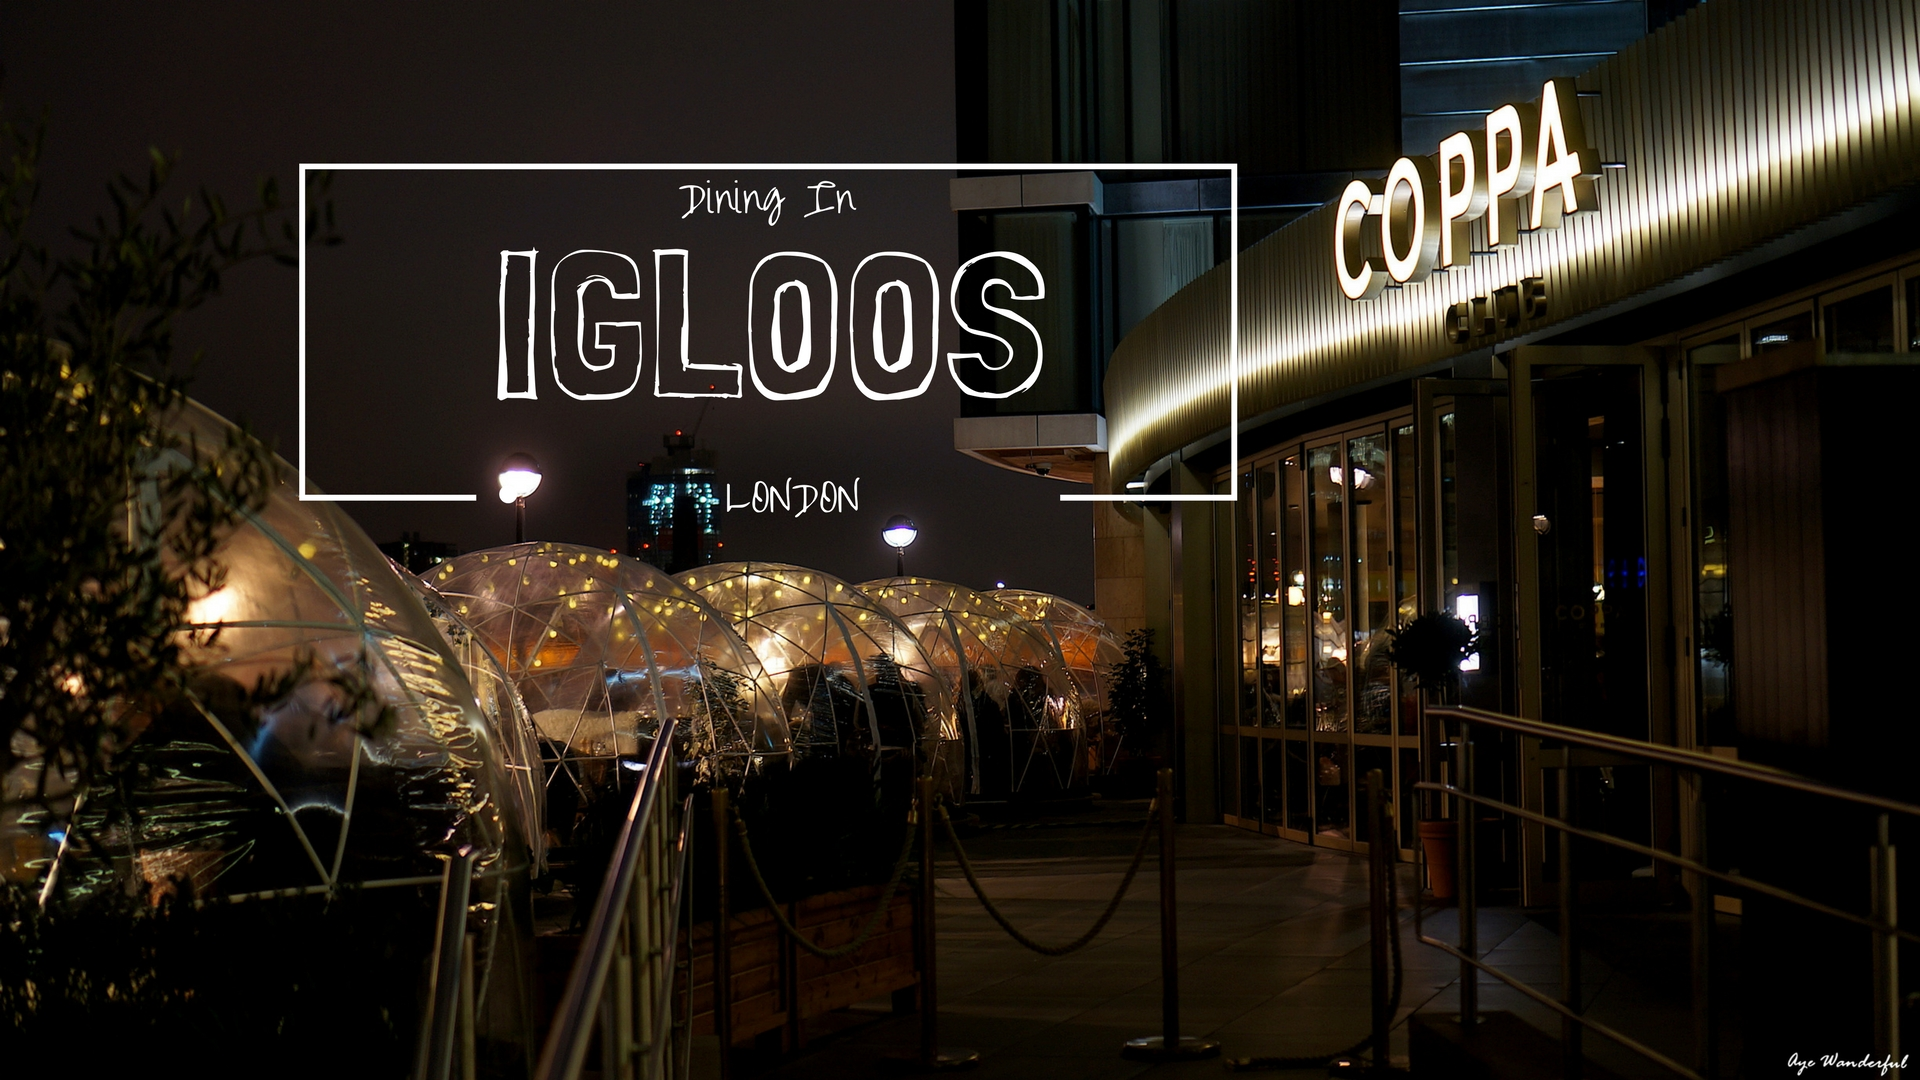 Coppa Club Igloos in London